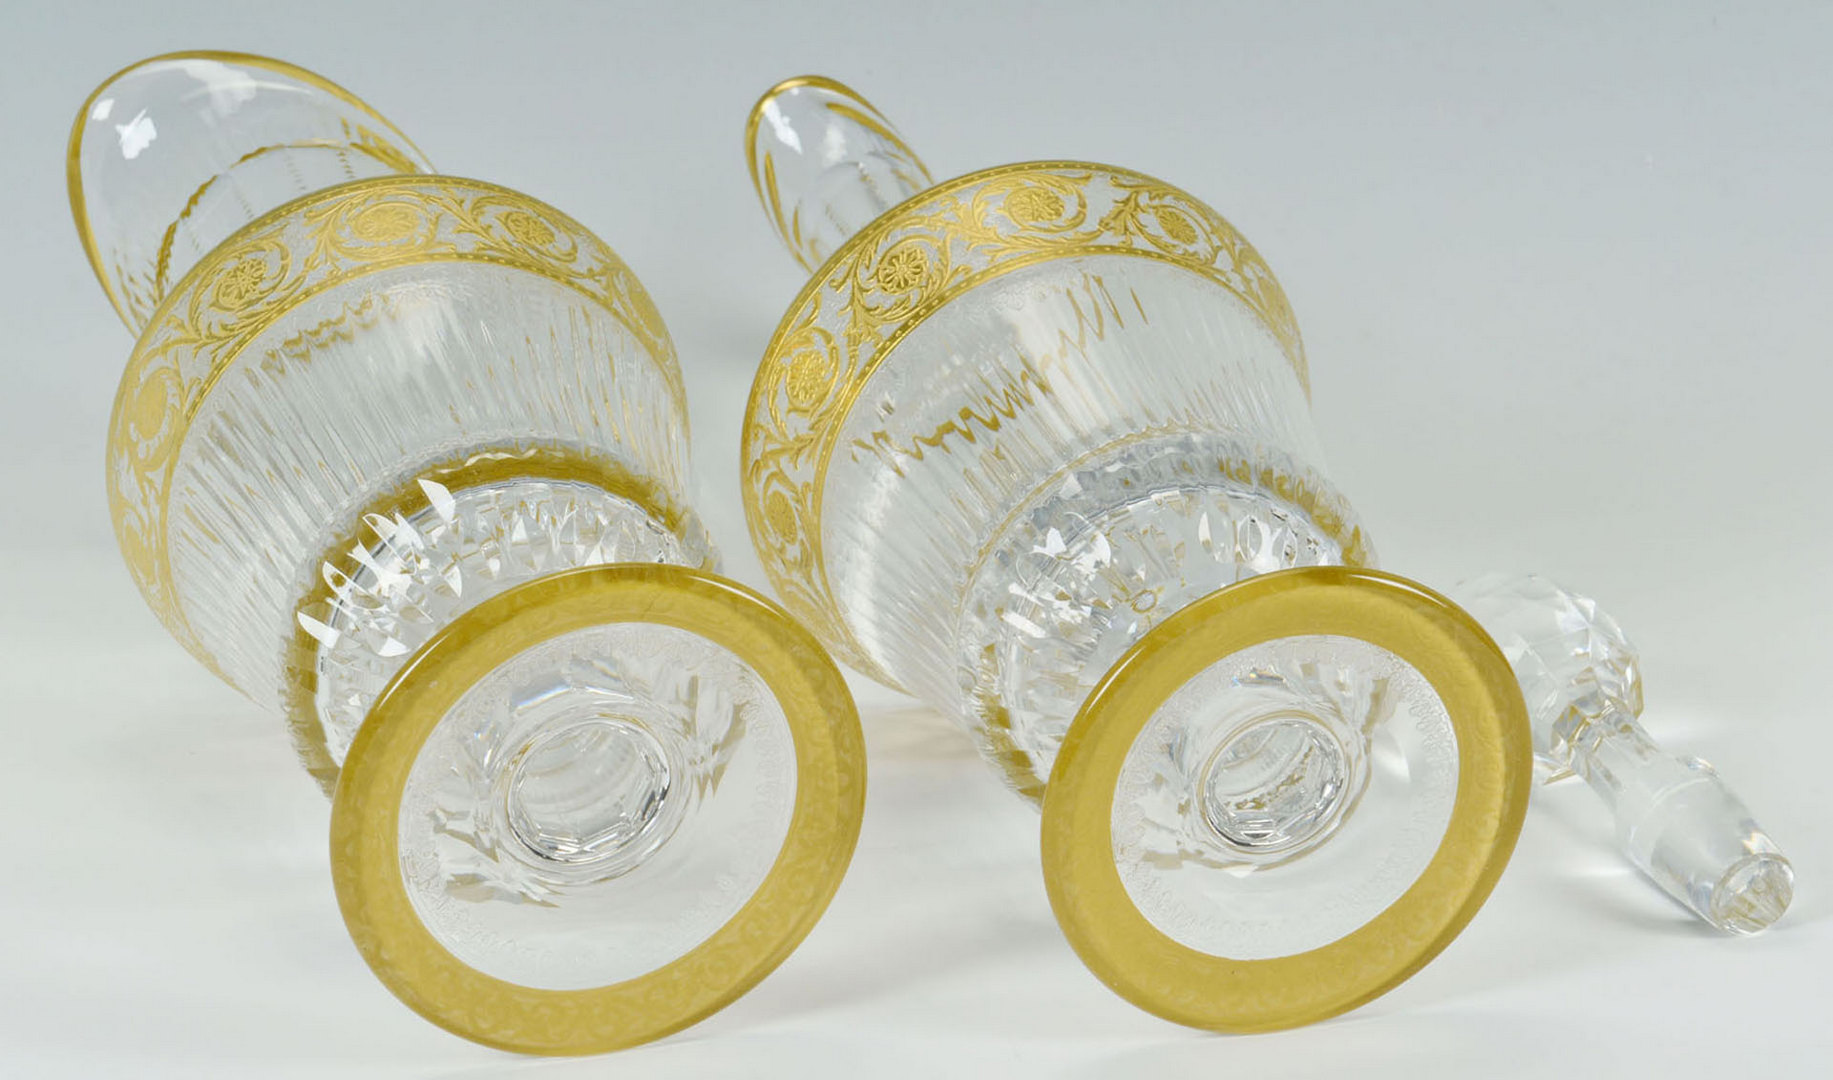 Lot 195: 3 Articles of St. Louis Glass